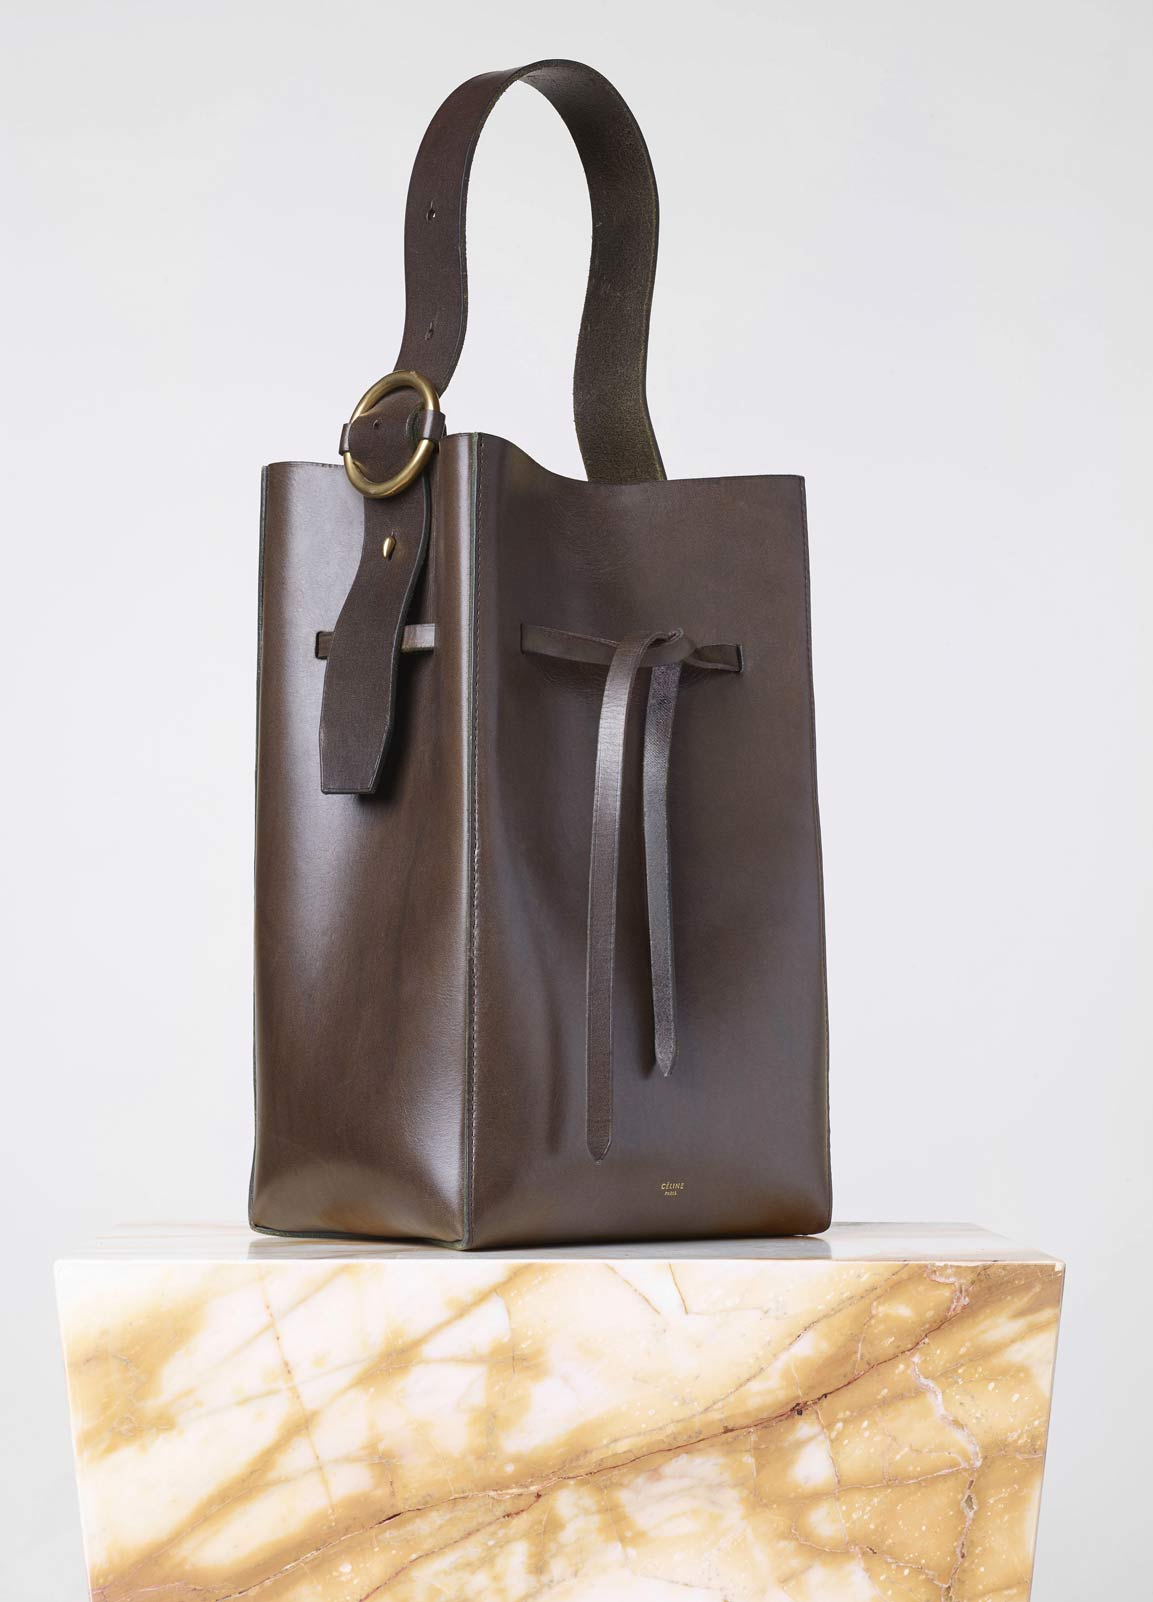 where can you buy celine bags online - Celine Pre-Fall 2015 Bag Collection featuring new Sangle Hobo ...